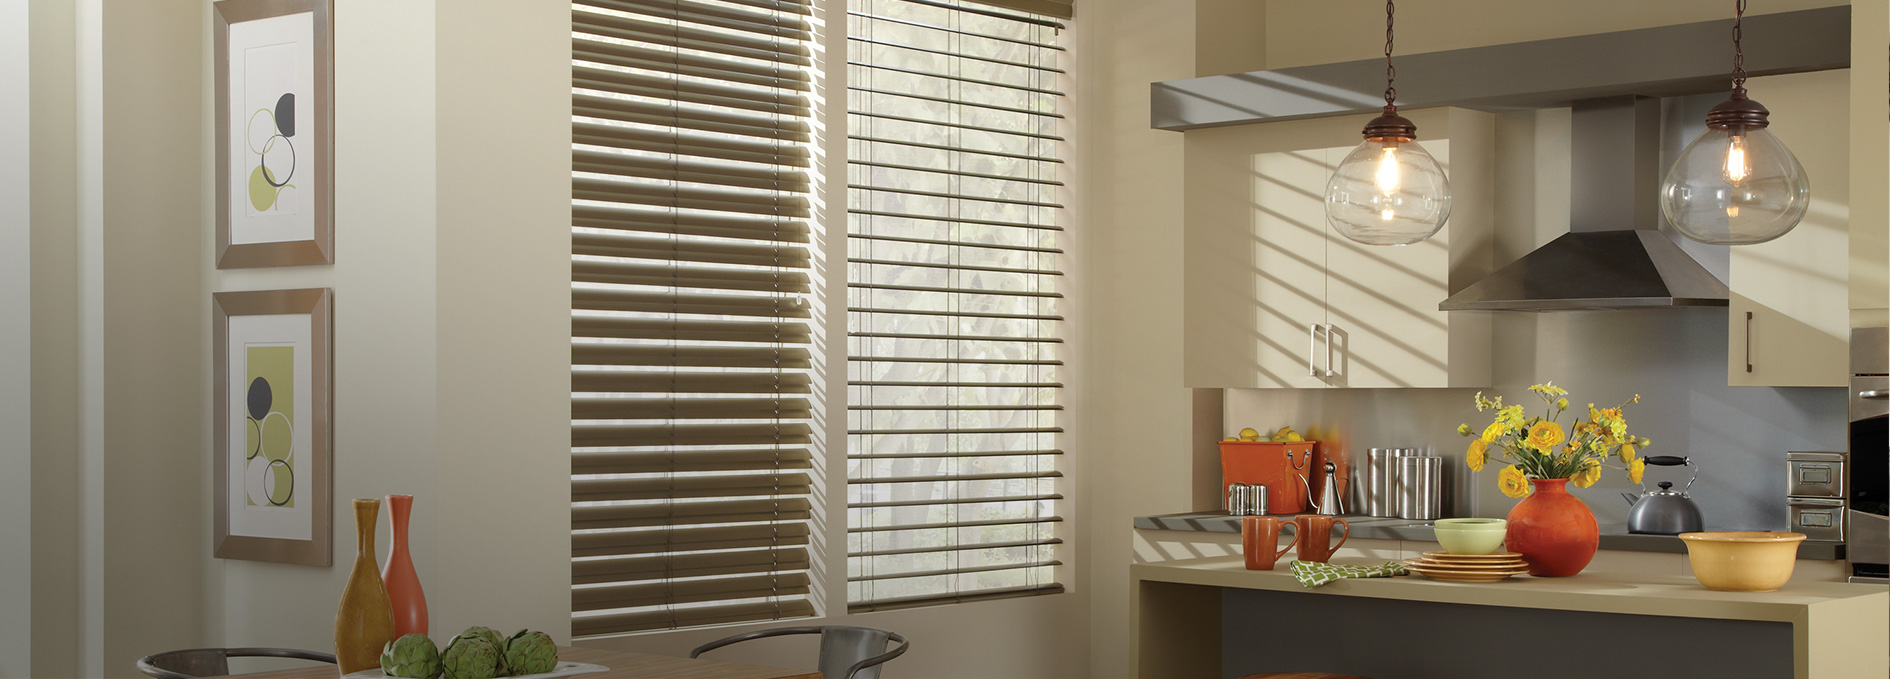 blinds kitchen douglas mid douglass interiors shades city architella pirouette or carpets portland hunter